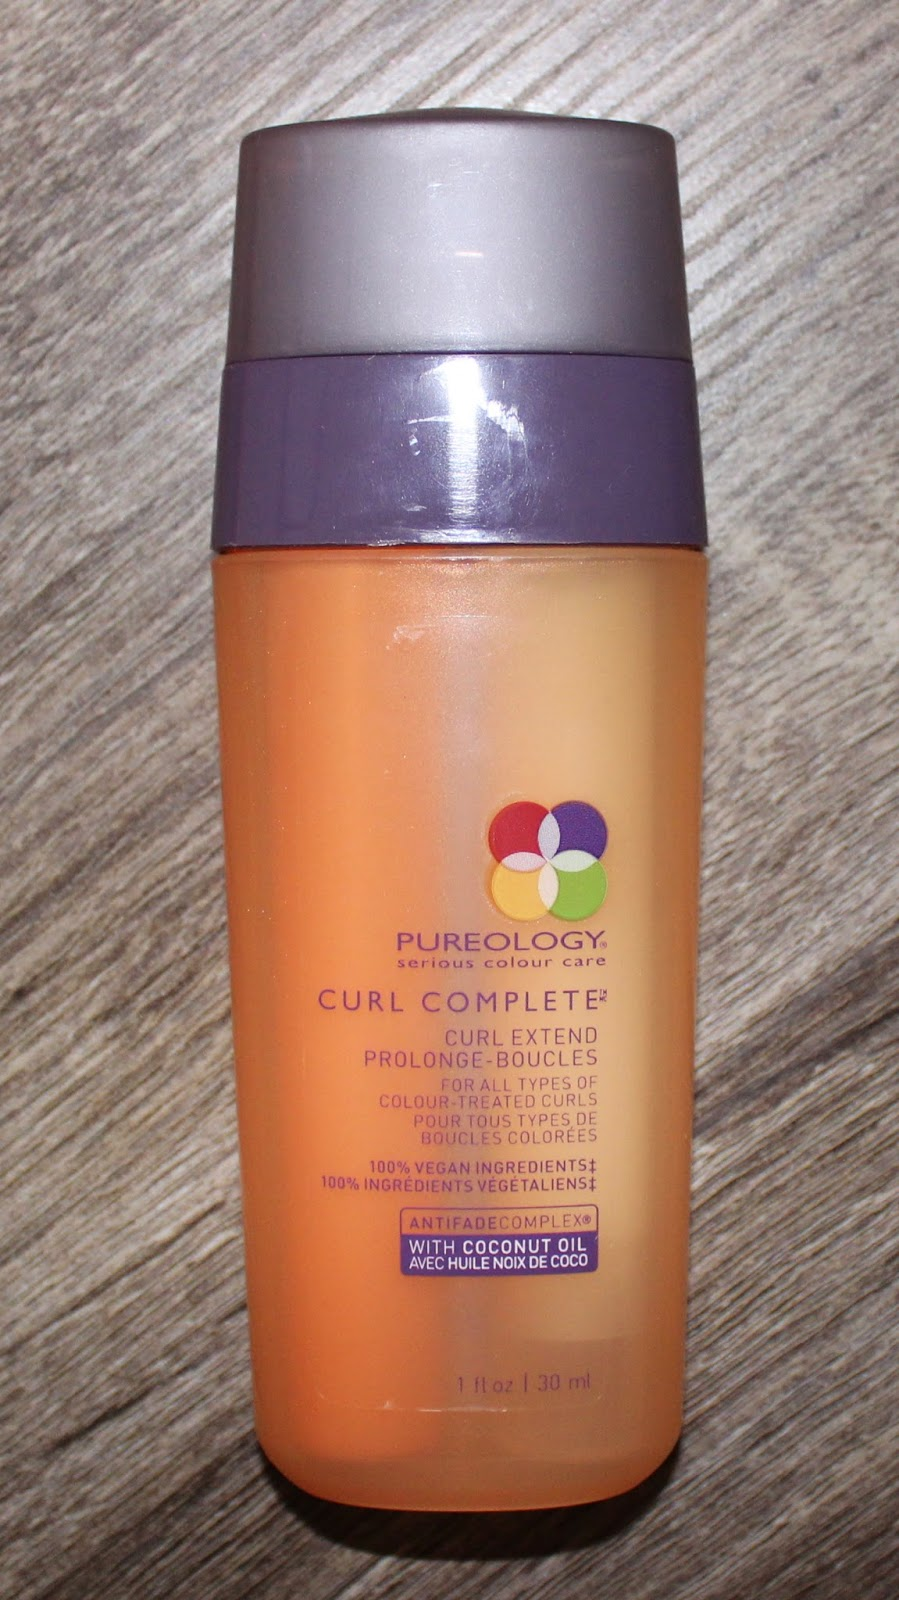 Pureology's Curl Complete Line